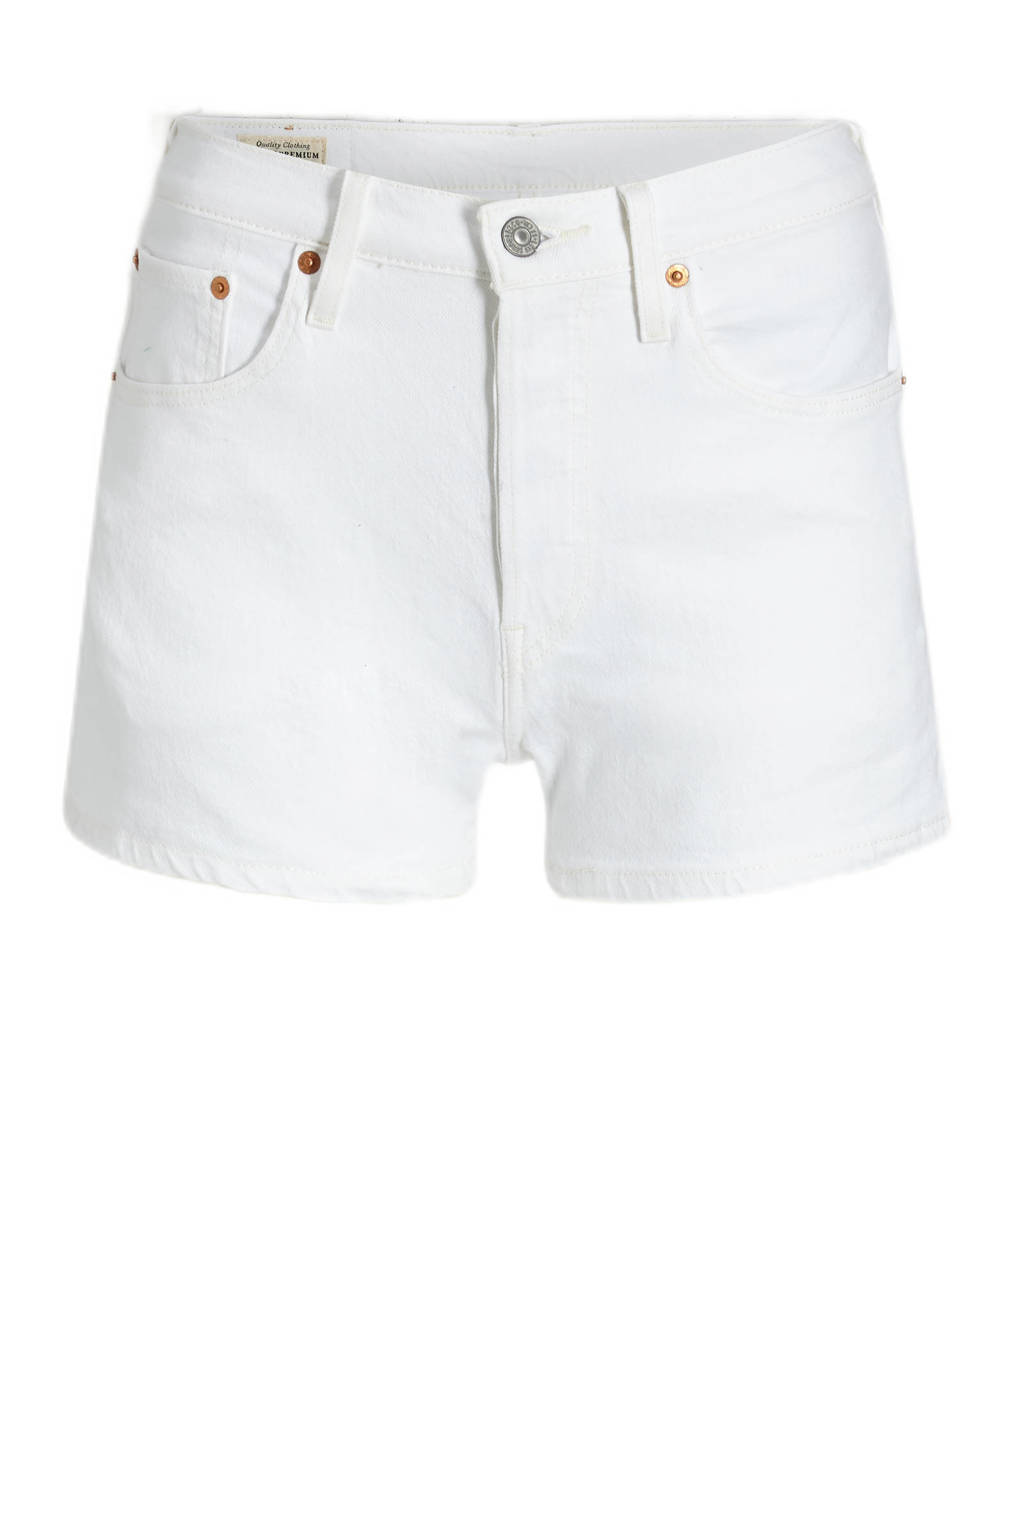 Levi's 501 ORIGINAL SHORT high waist jeans short in the clouds, IN THE CLOUDS